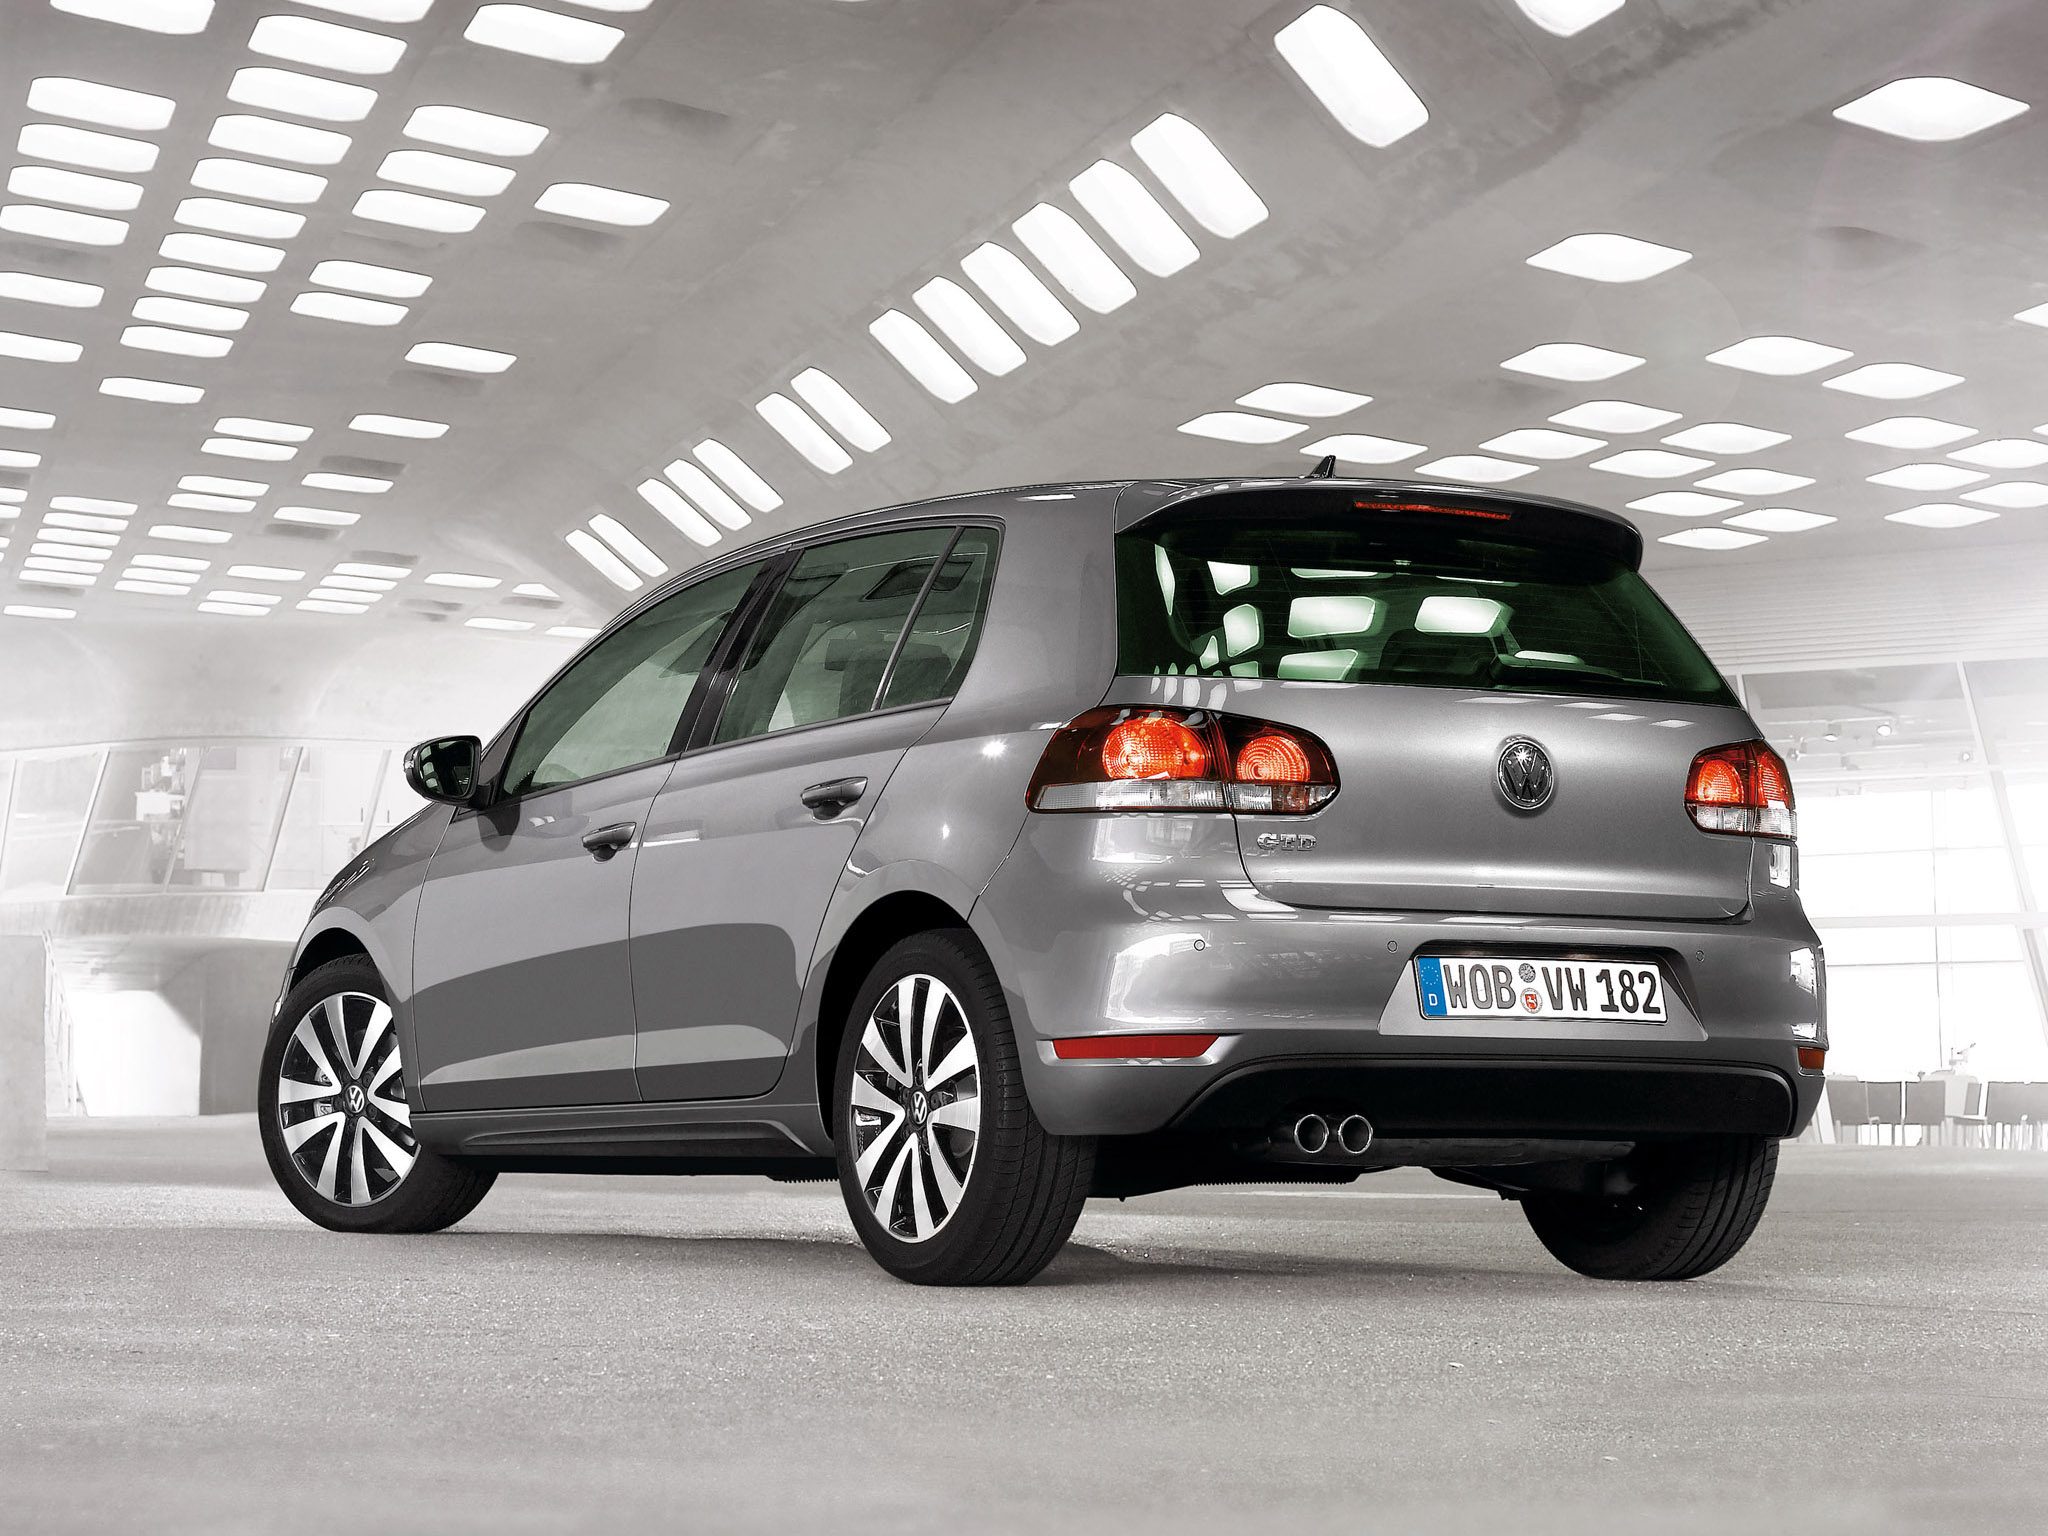 volkswagen golf vi gtd 5 door 2009 volkswagen golf vi gtd. Black Bedroom Furniture Sets. Home Design Ideas